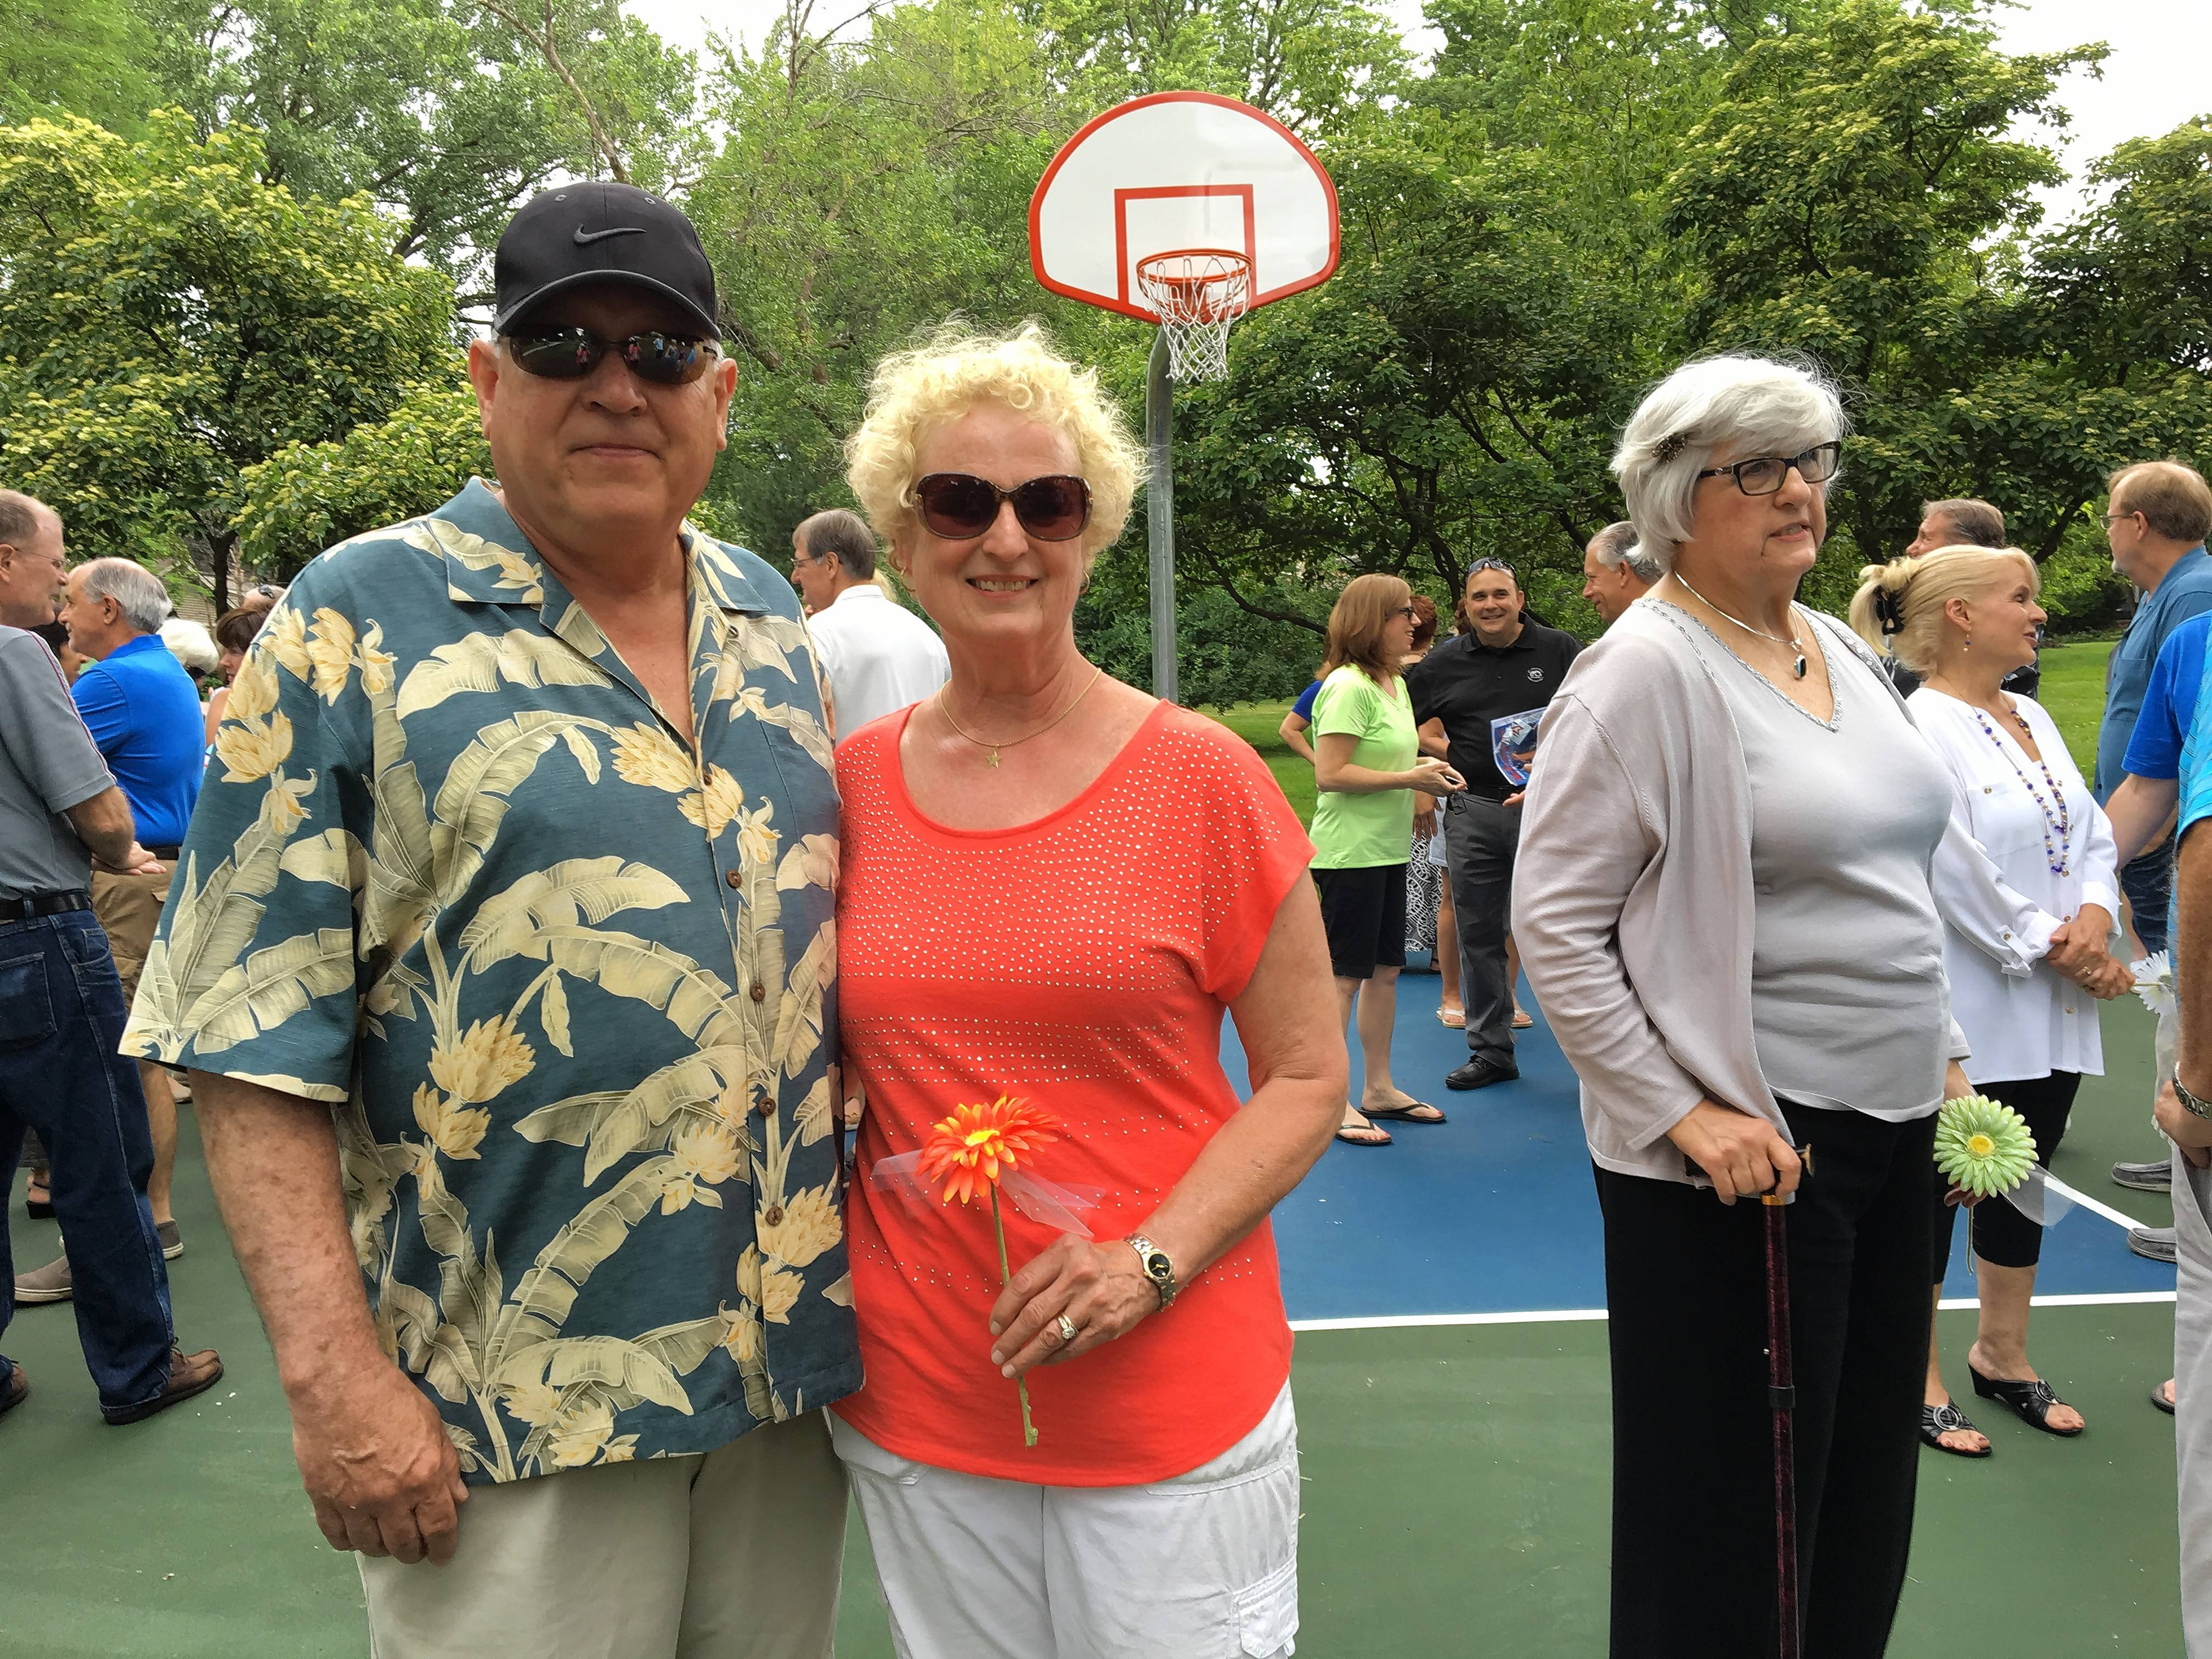 Bruce and Marta Gillilan of Mount Prospect donated $15,000 toward the building of this basketball court in their neighborhood We-Go Park. It was dedicated Saturday in memory of their daughter Lindsay, a special needs kindergarten teacher in Lake Zurich Unit District 95, who died suddenly in 2009.